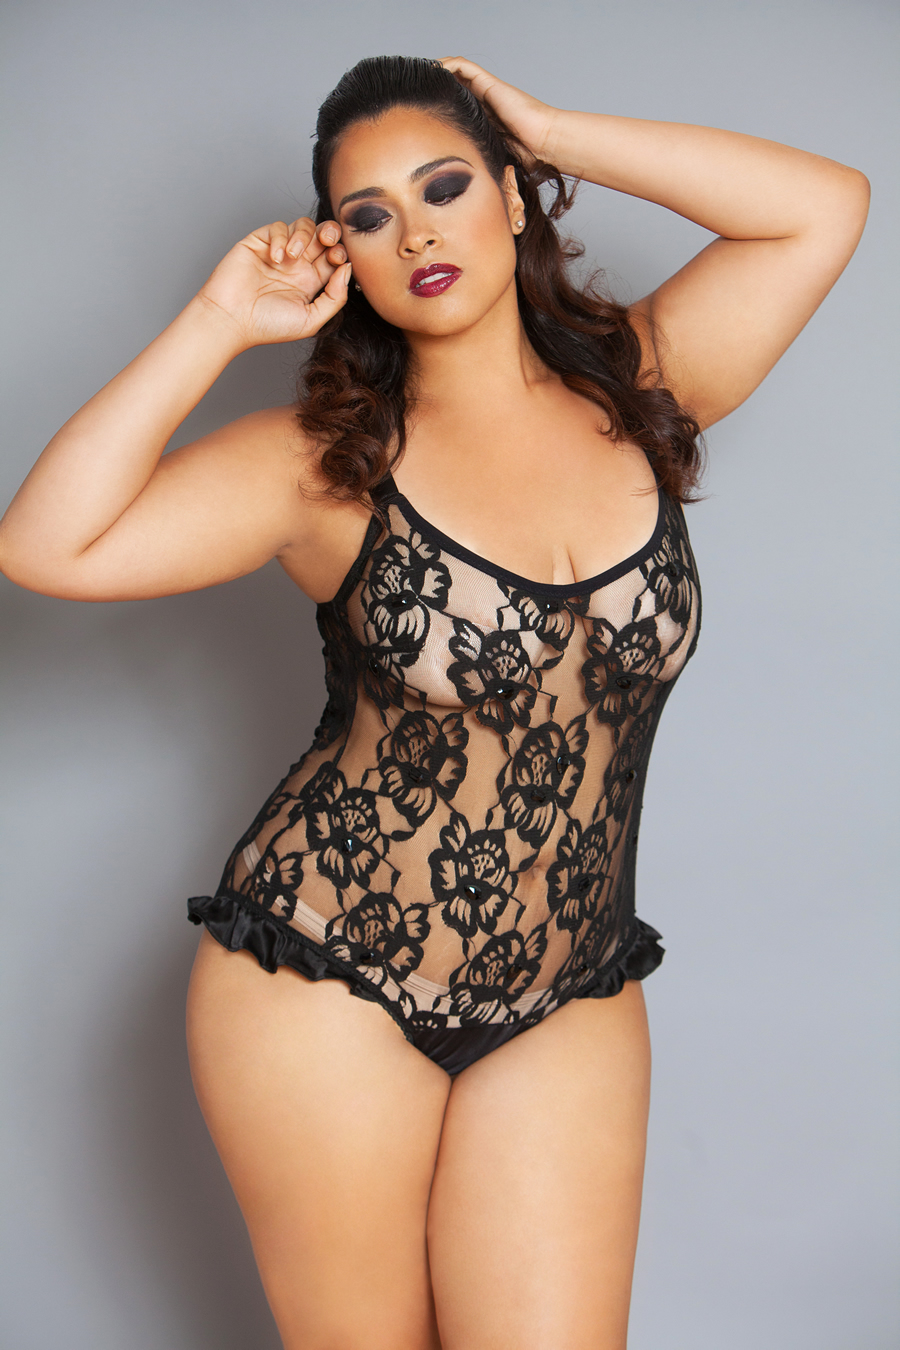 Plus size lingerie models 5